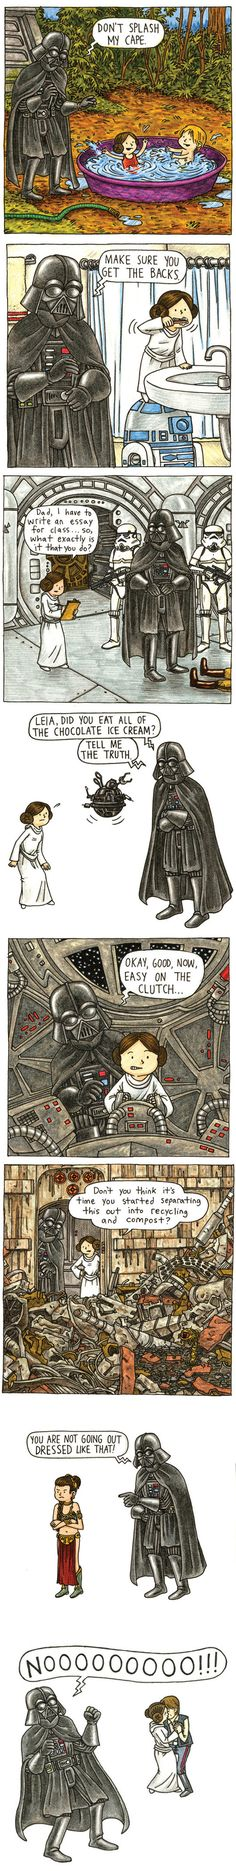 Vader's Little Princess, the fader and son is better though